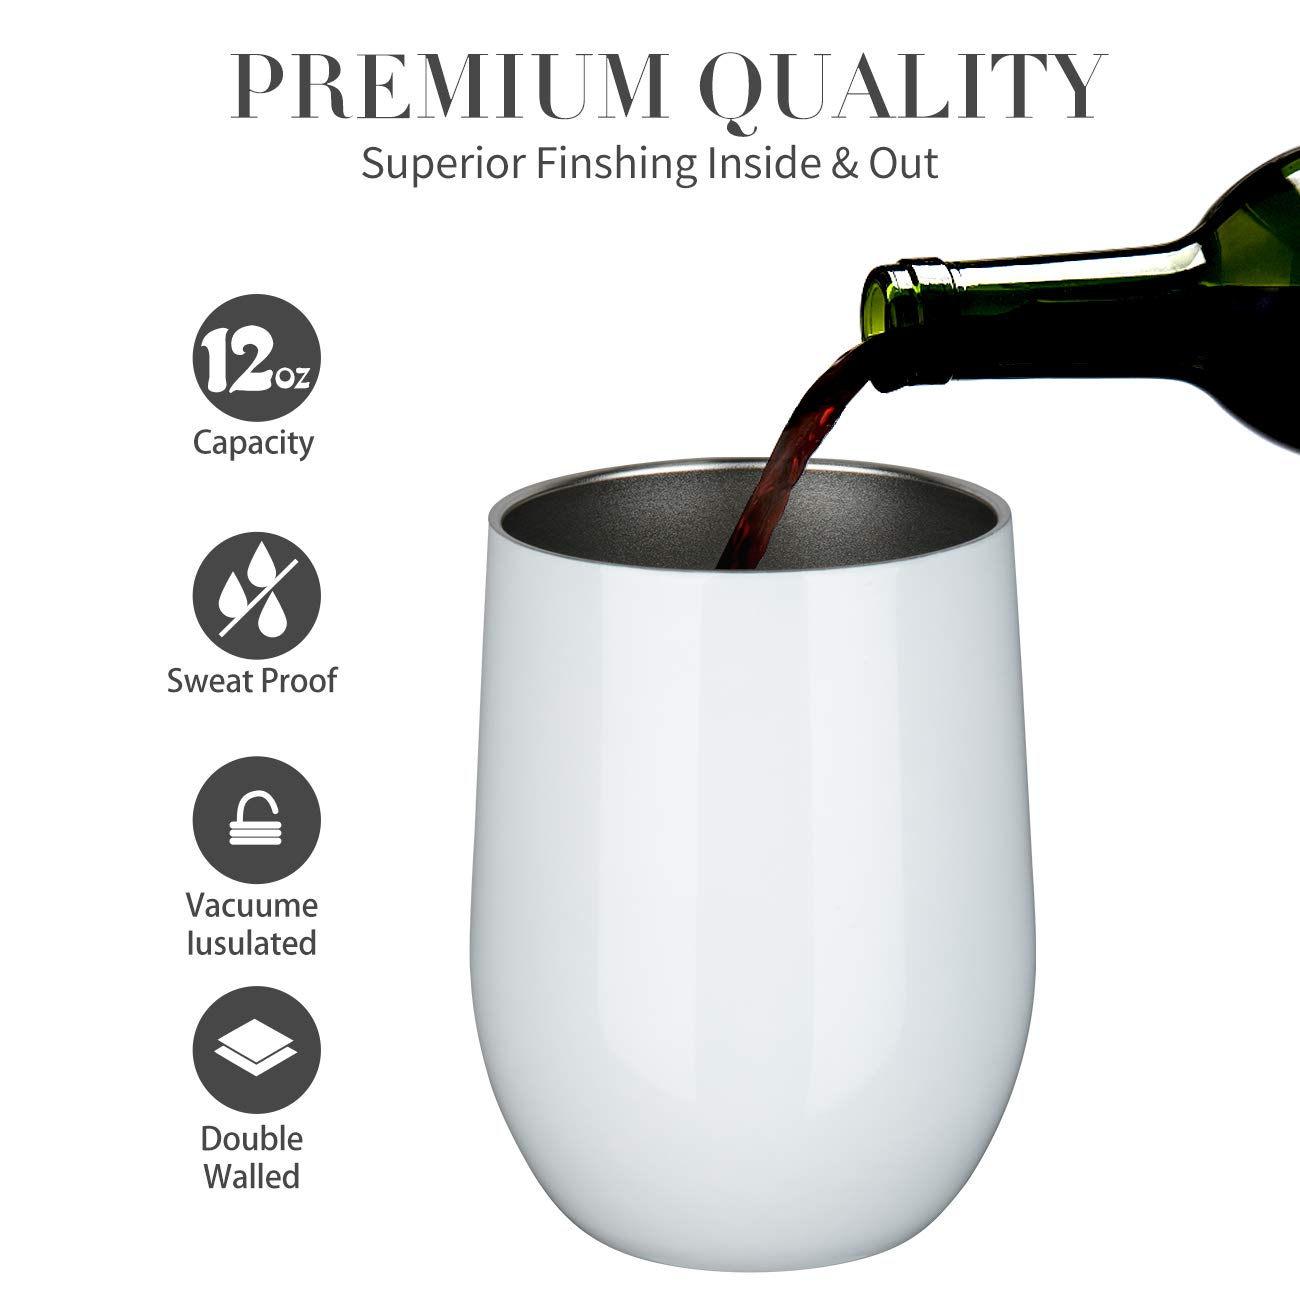 Stainless Steel Stemless Wine Glass Tumbler with Lid, 12 oz | Double Wall Vacuum Insulated Travel Tumbler Cup for Coffee, Wine, Cocktails, Ice Cream - Wall Vaccum Insulation Thermos cup (White) by ONEB (Image #4)